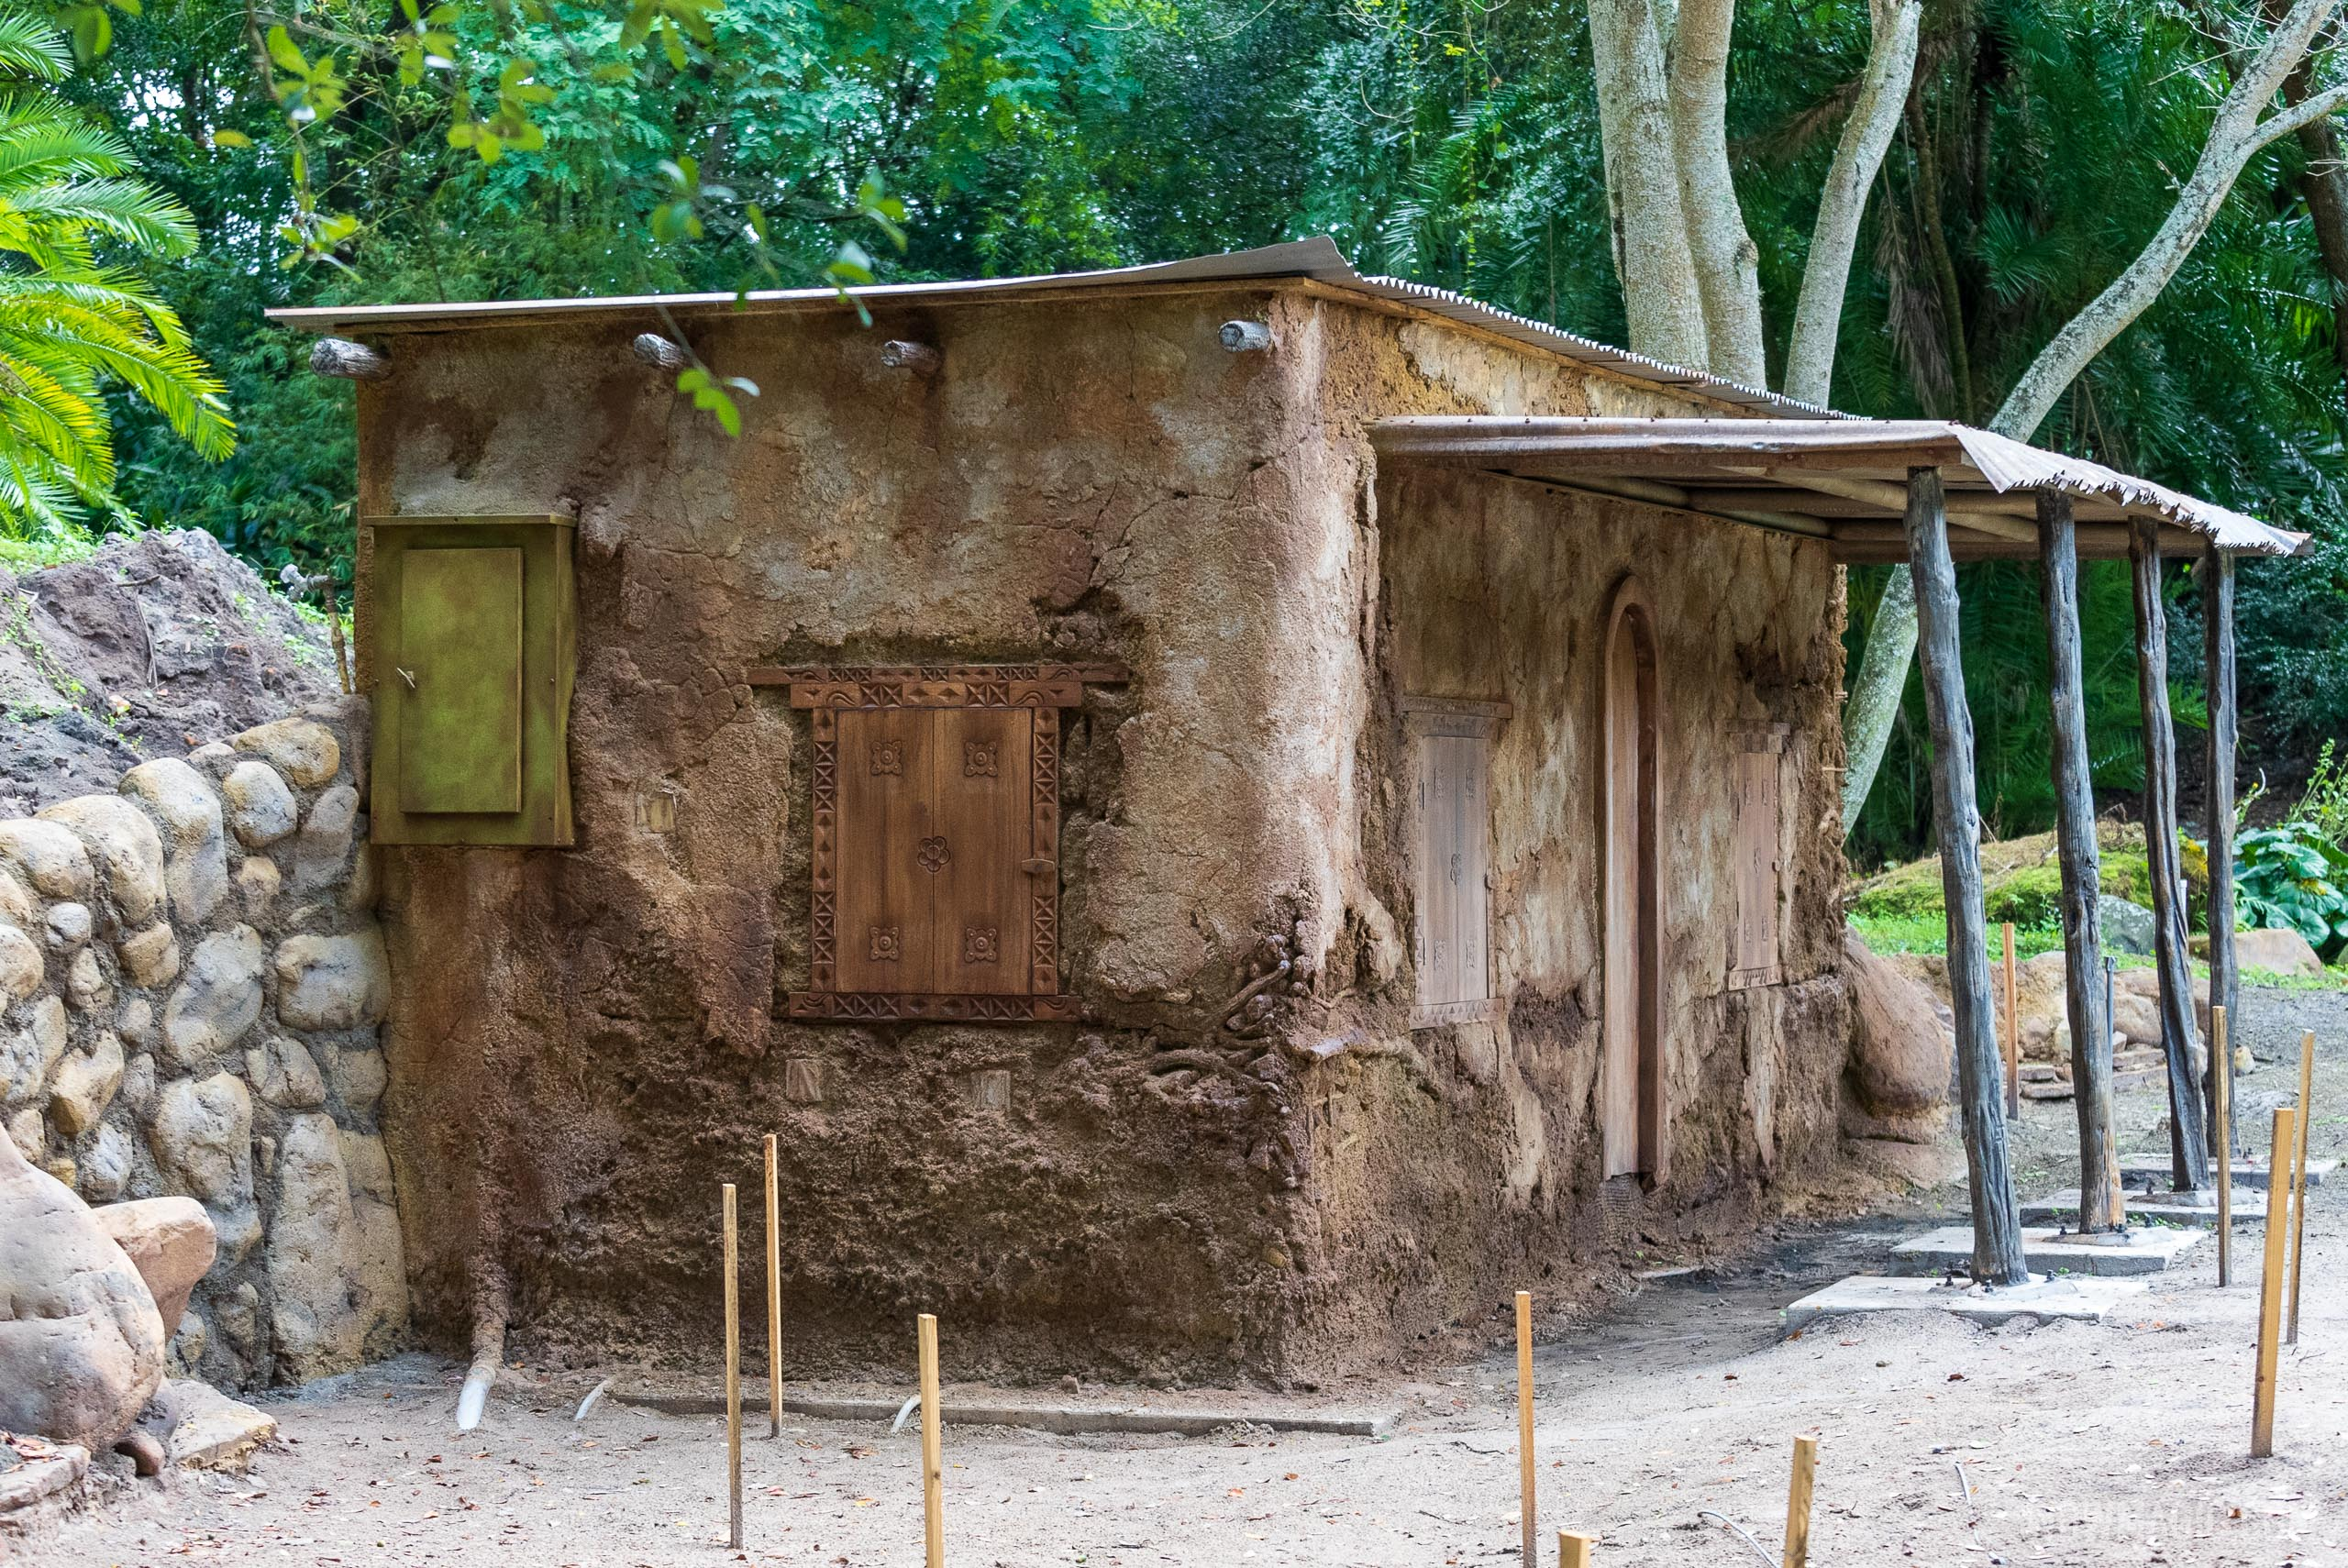 New building construction at Kilimanjaro Safaris - October 26 2020